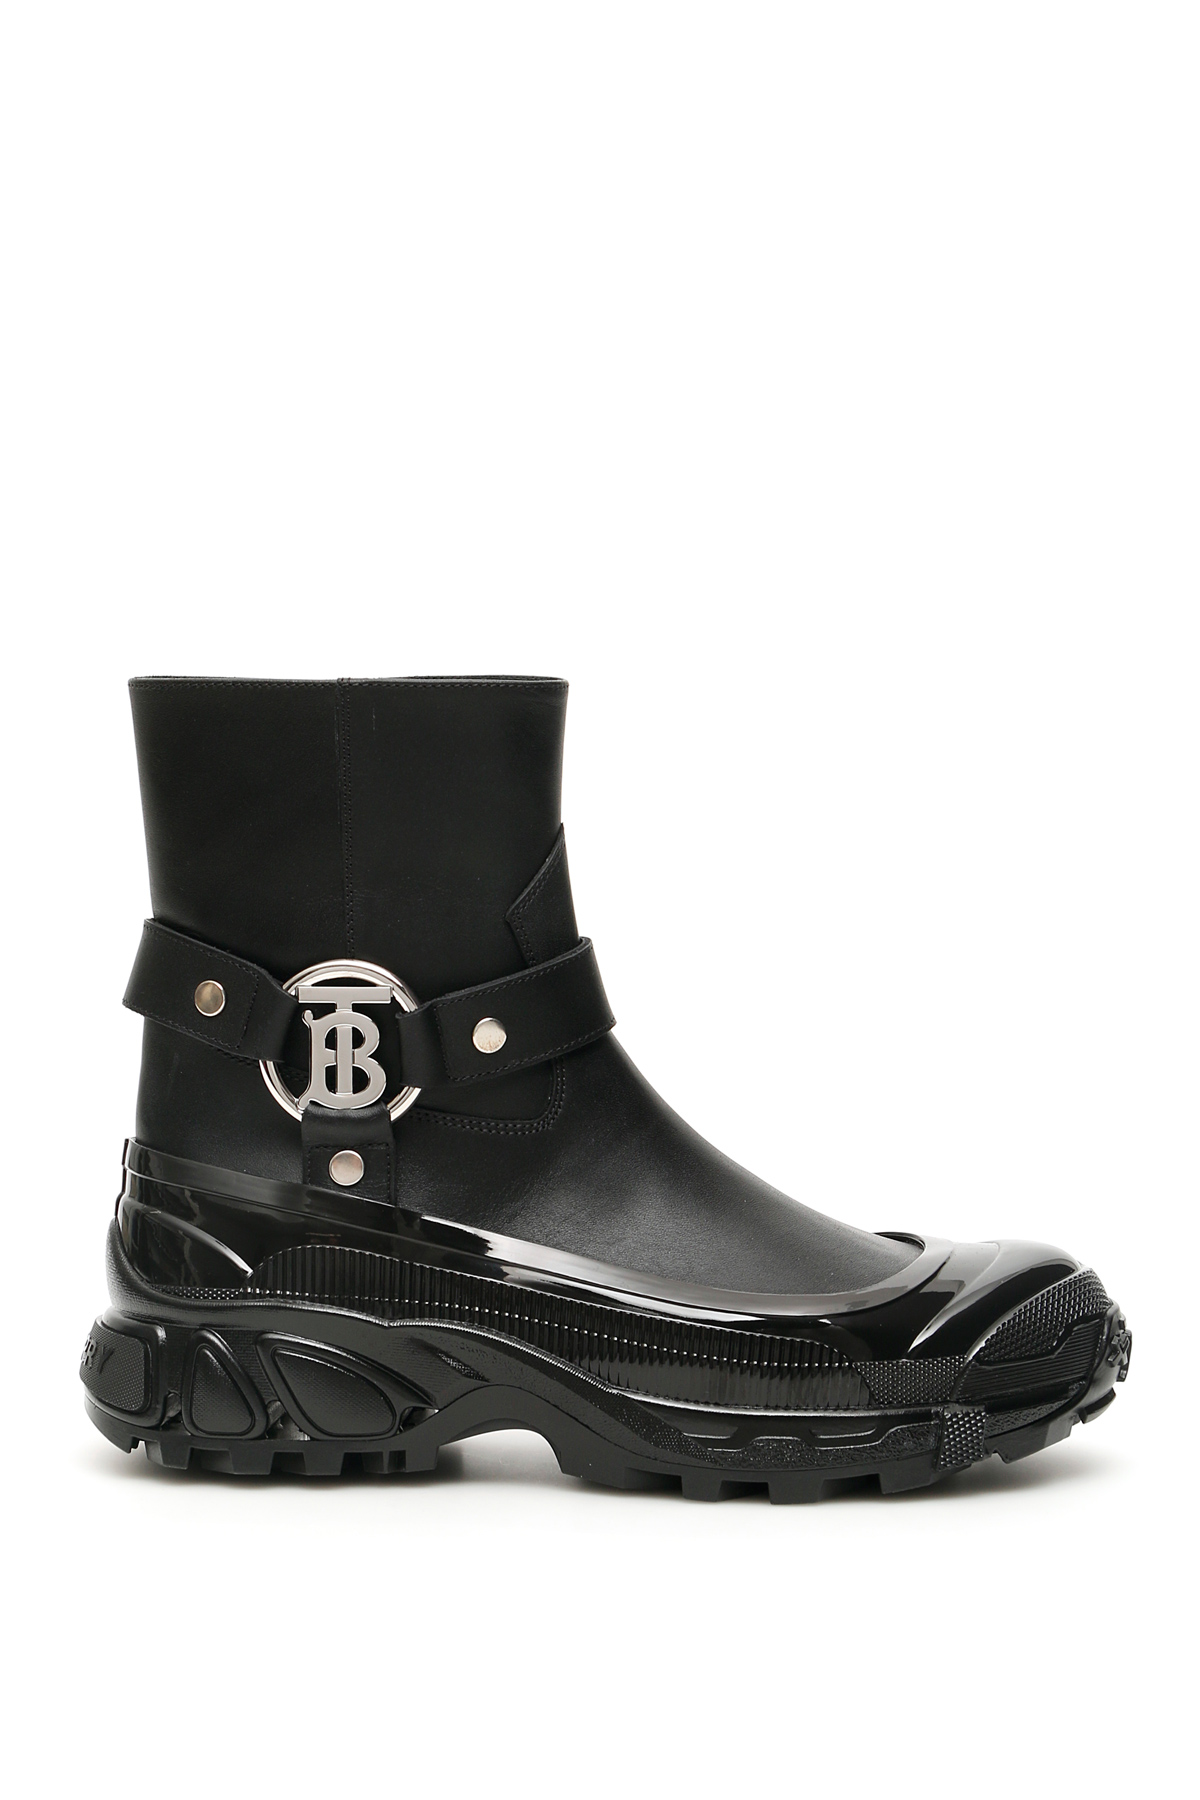 Burberry Leathers MALLORY TB BOOTS